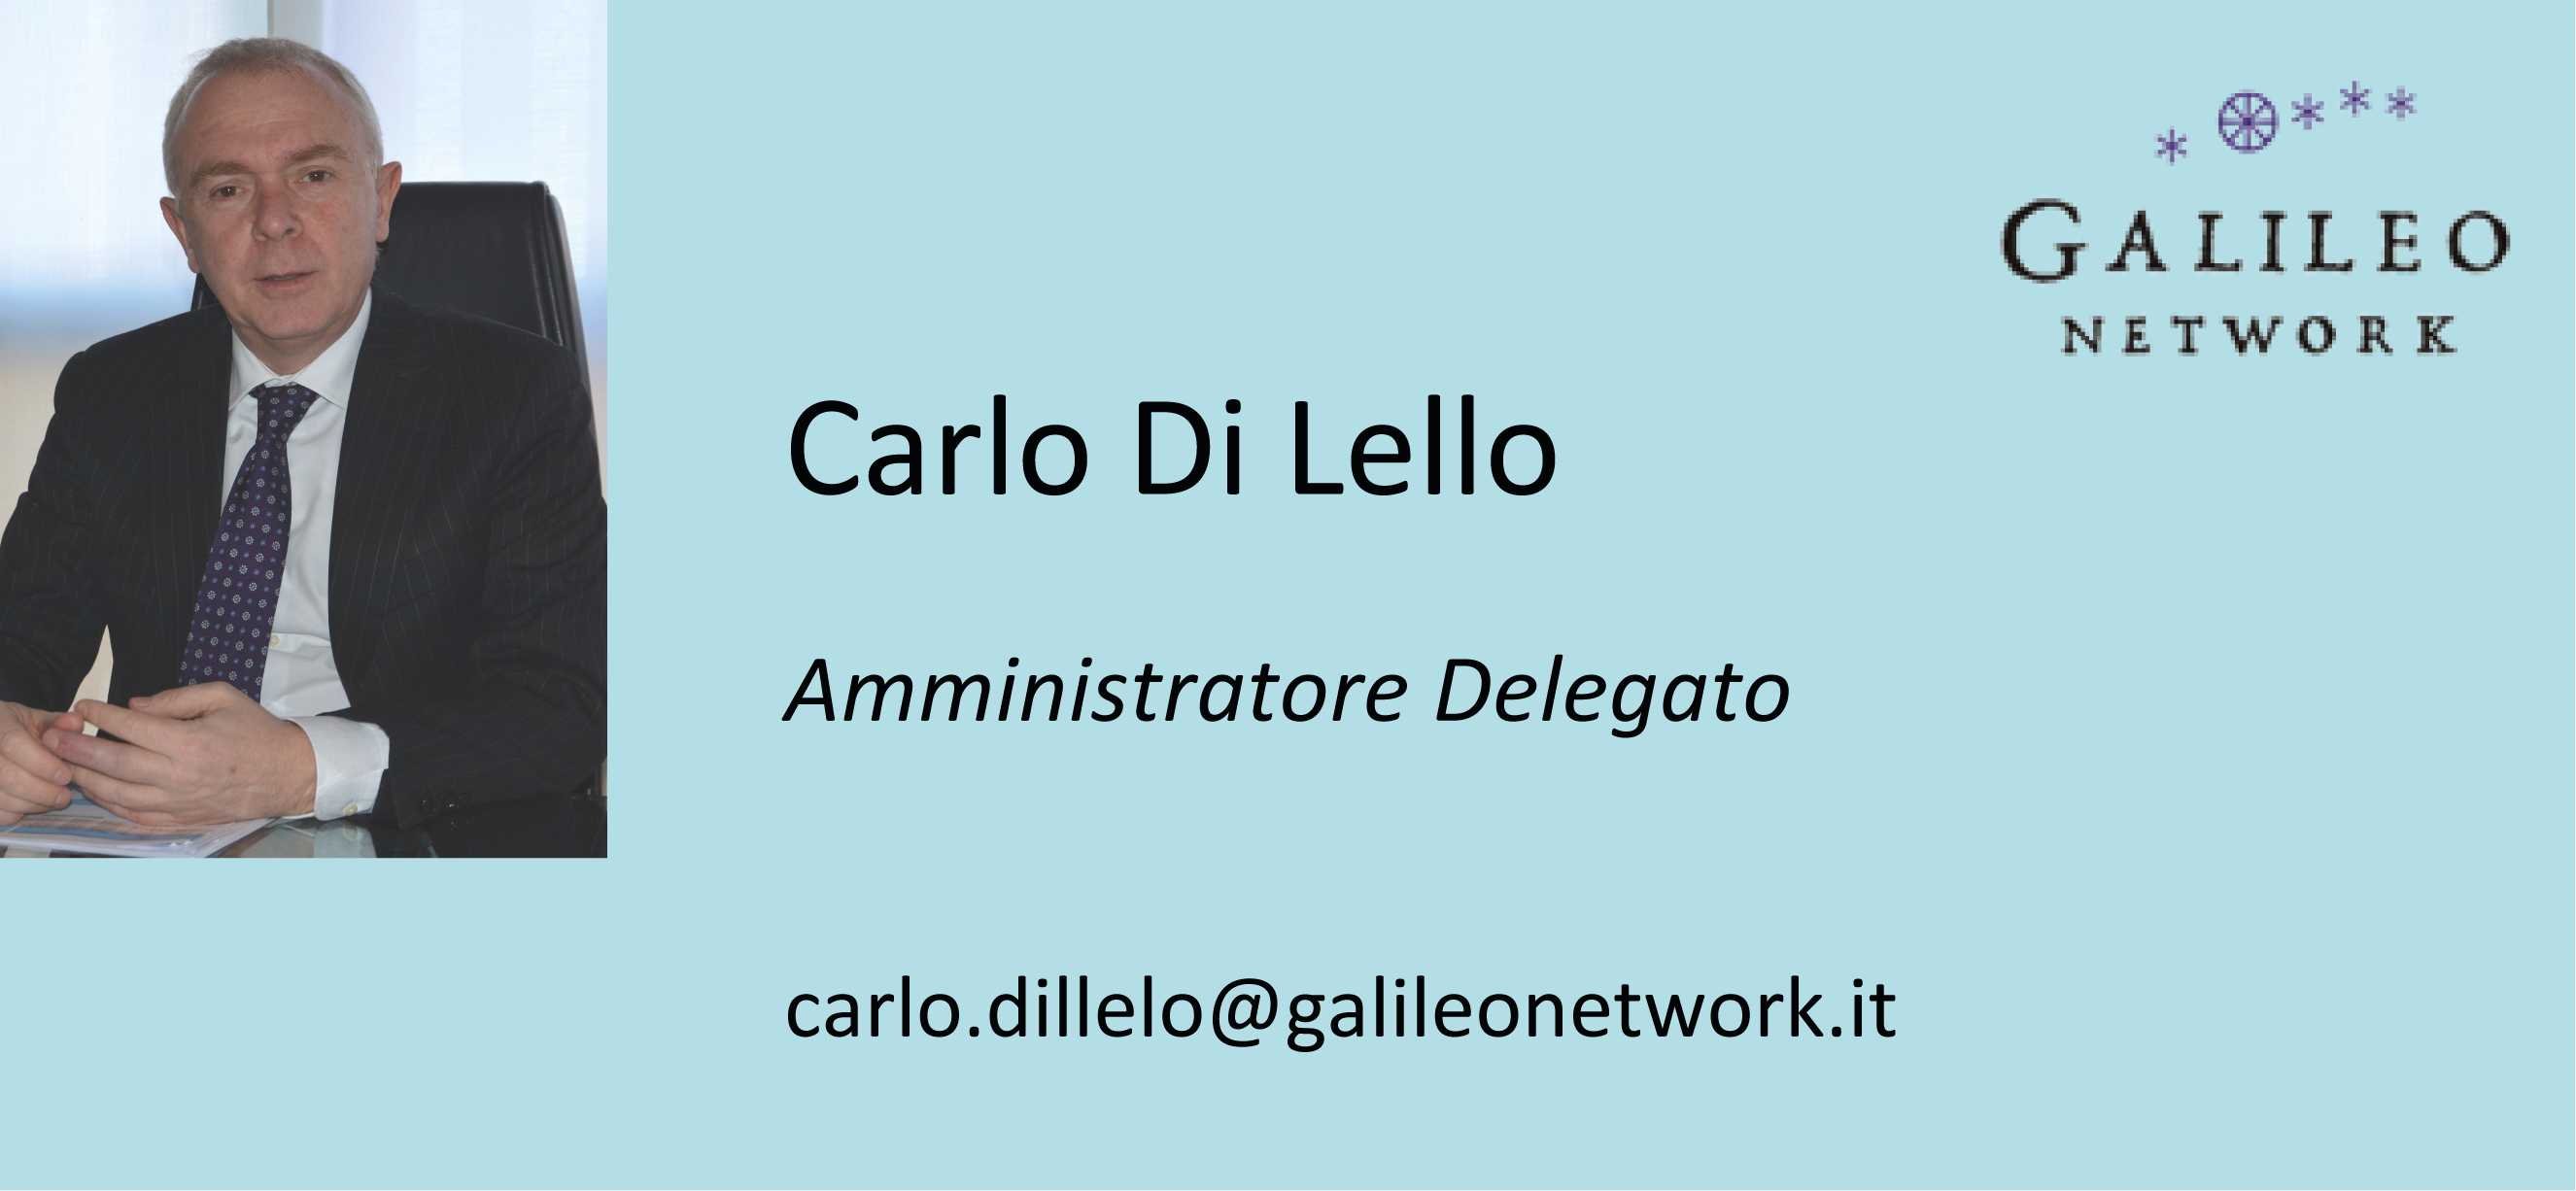 DiLello_management